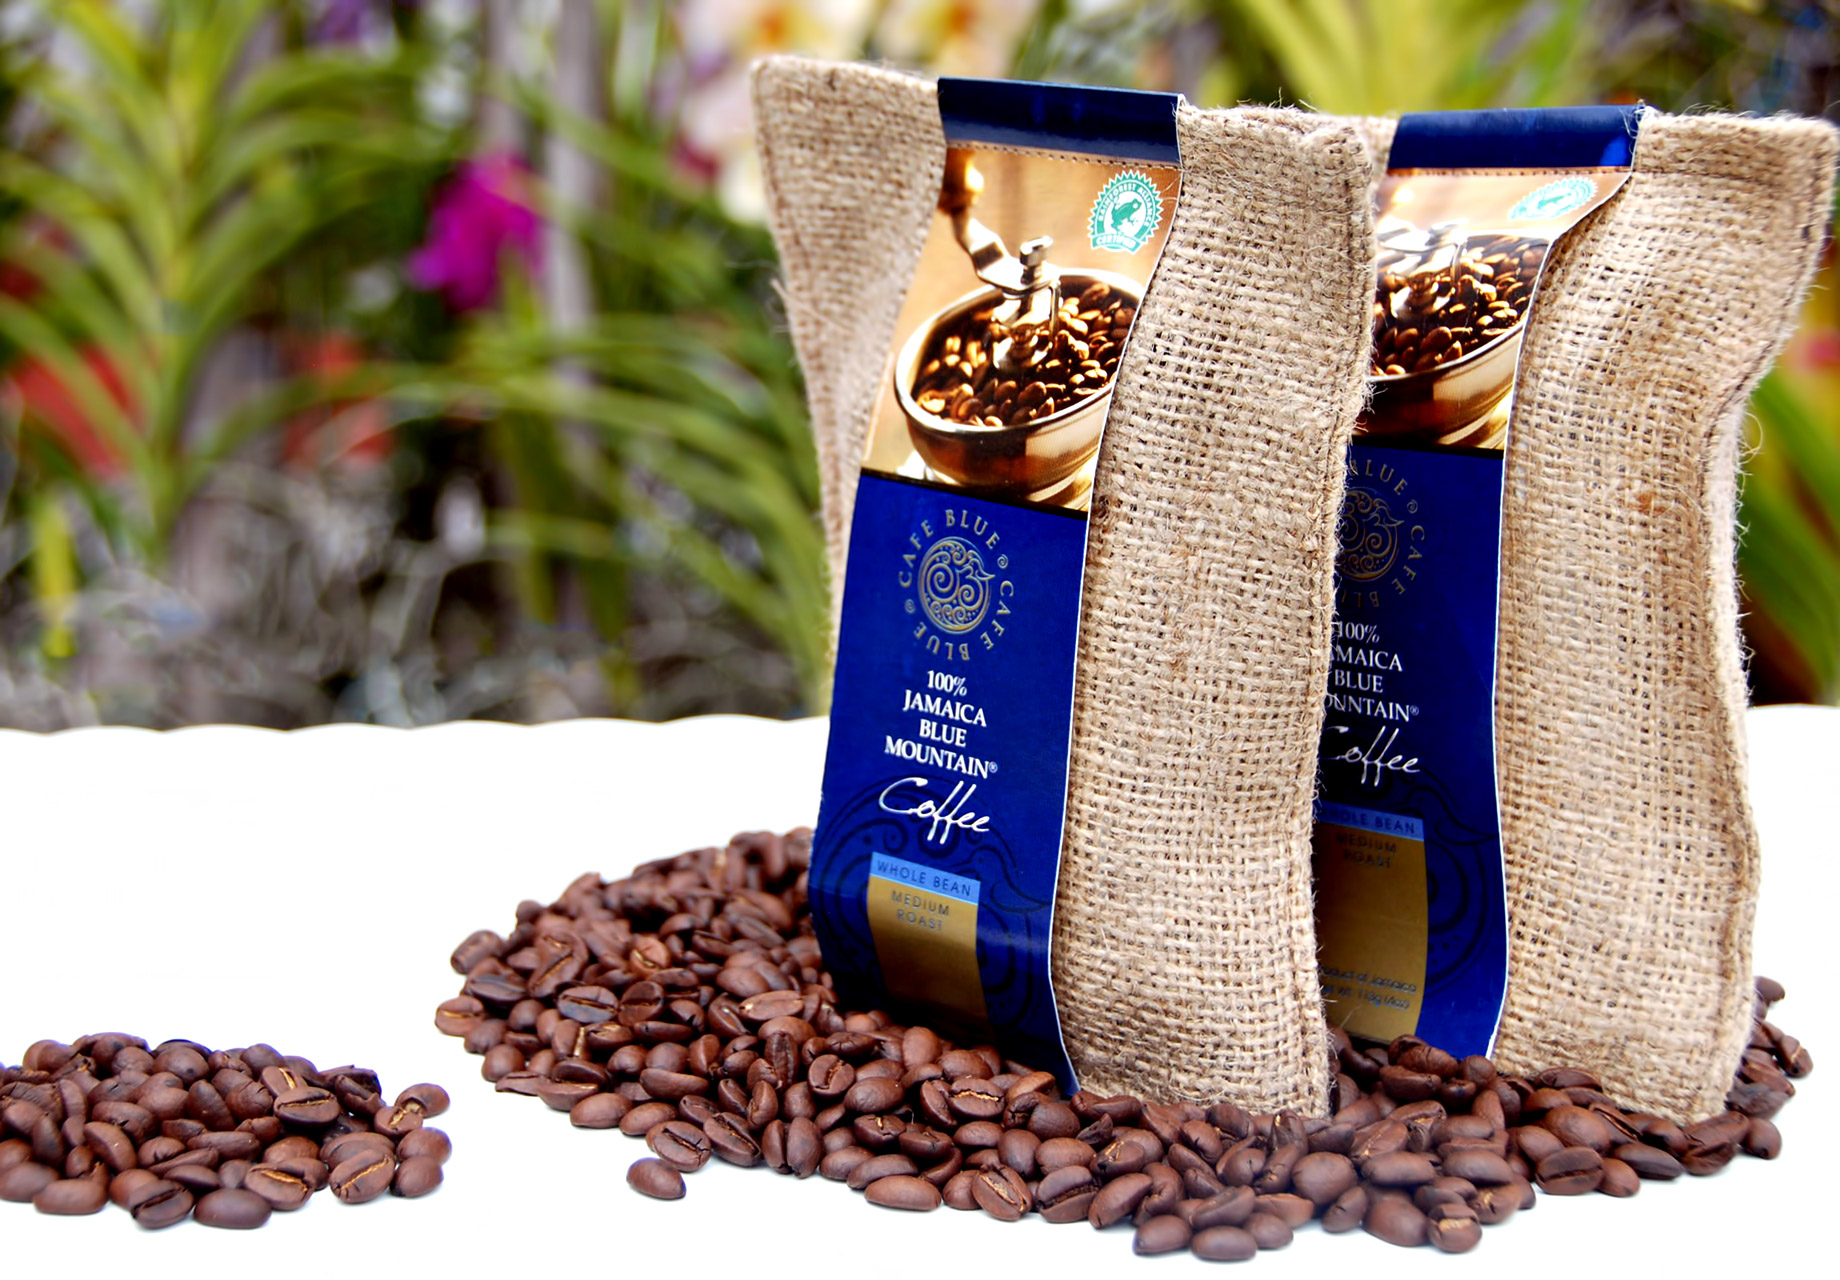 Jamaican Blue Mountain - Wallenford Estate, Jamaica - One of the Most Expensive Coffees in the World